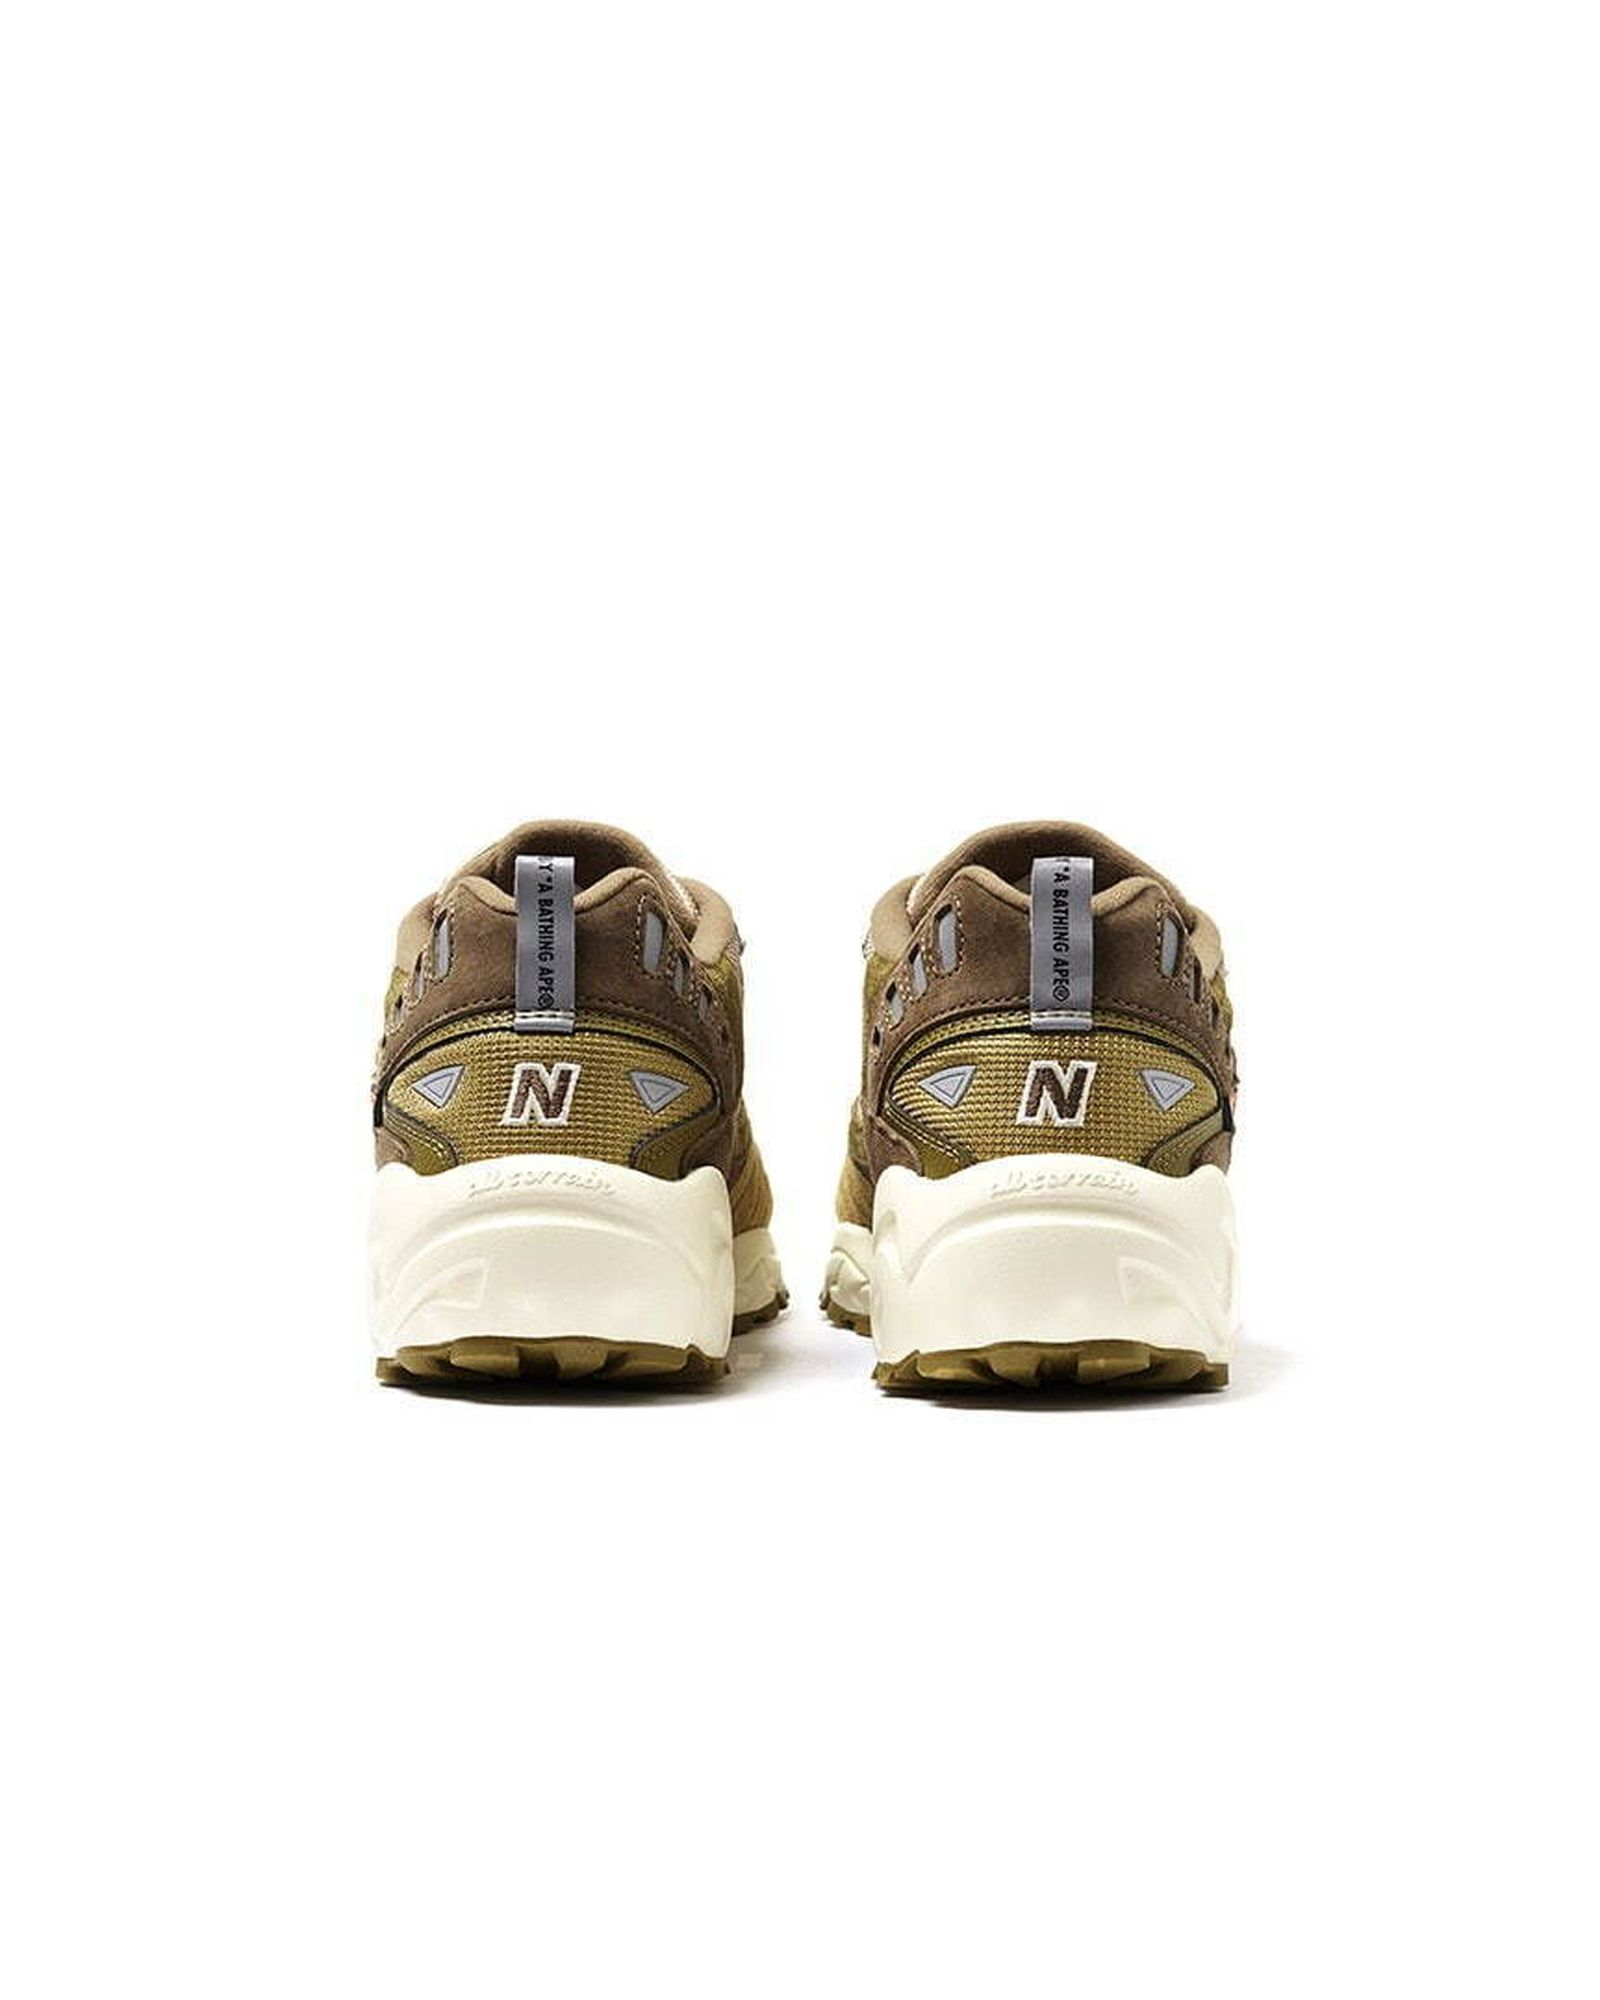 aape-new-balance-collection-release-info-4